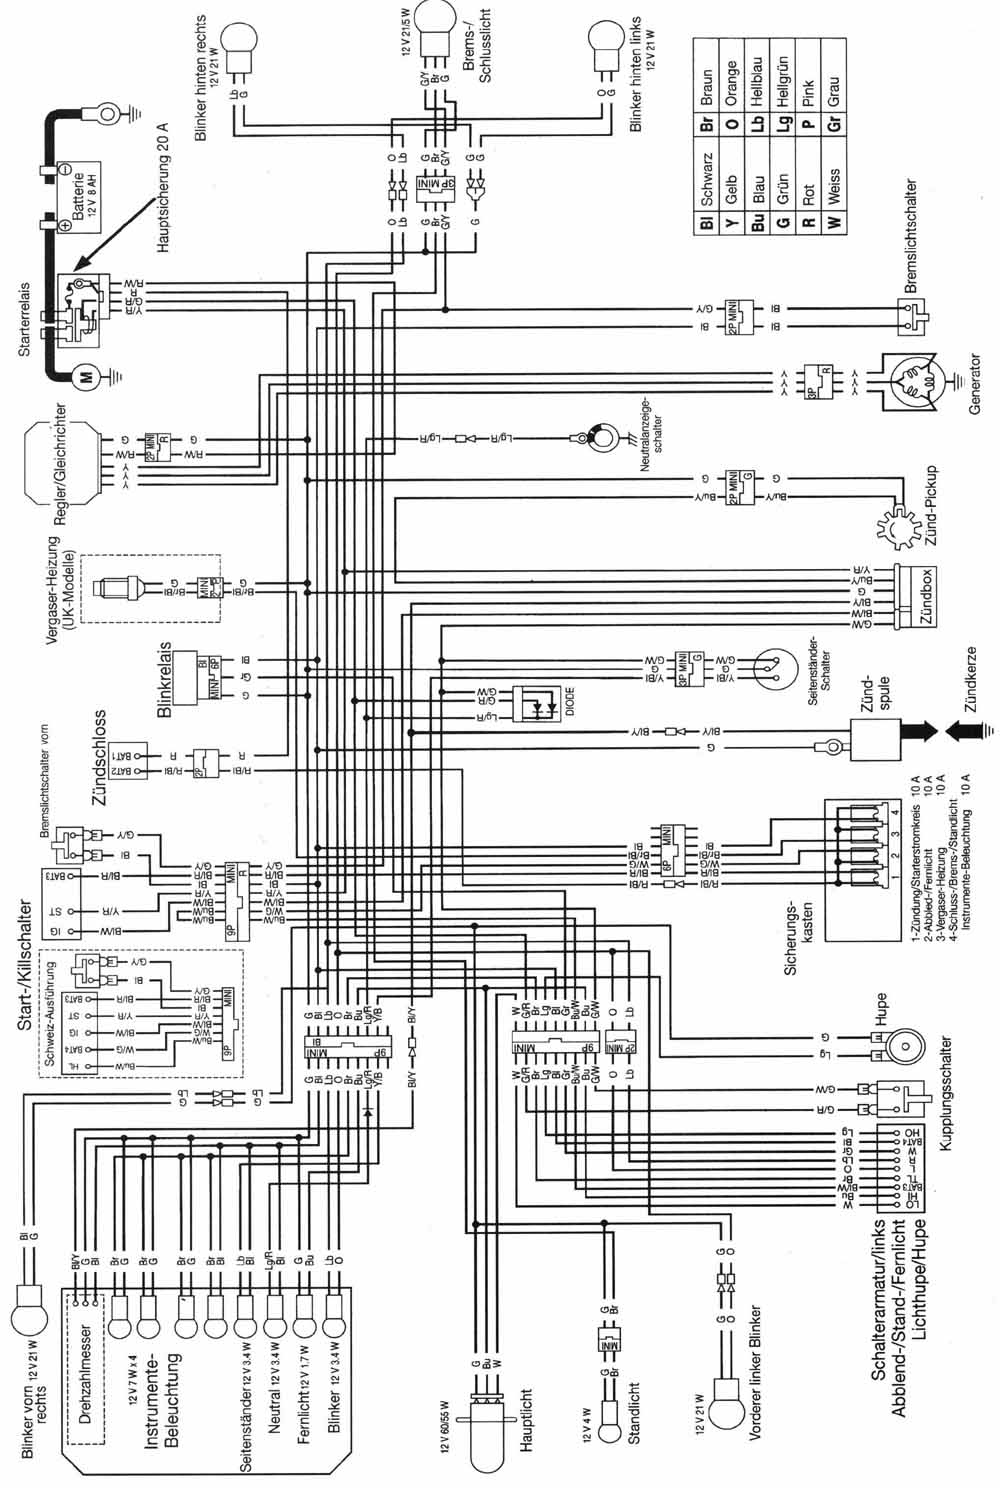 [CCKI_5342] Odes 800cc Dominator Wiring Diagram Review